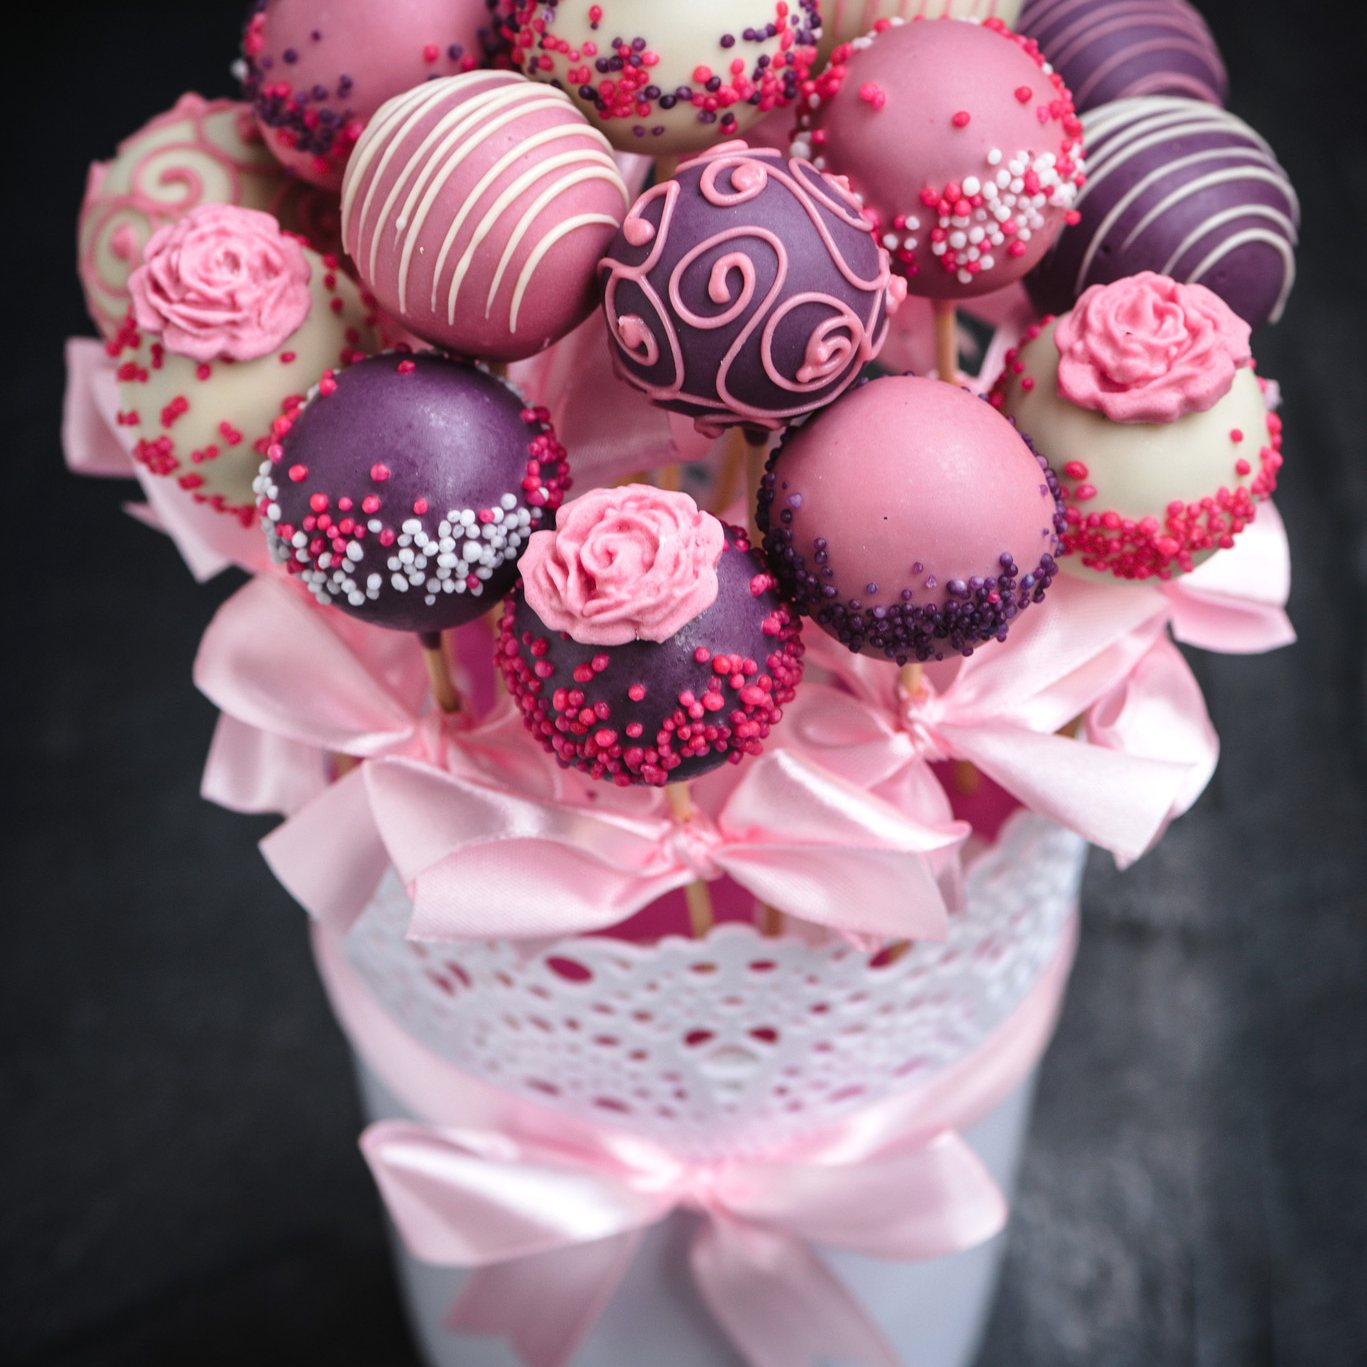 Cake pops bouquet gift for any occasion yumbles cake pops bouquet gift for any occasion negle